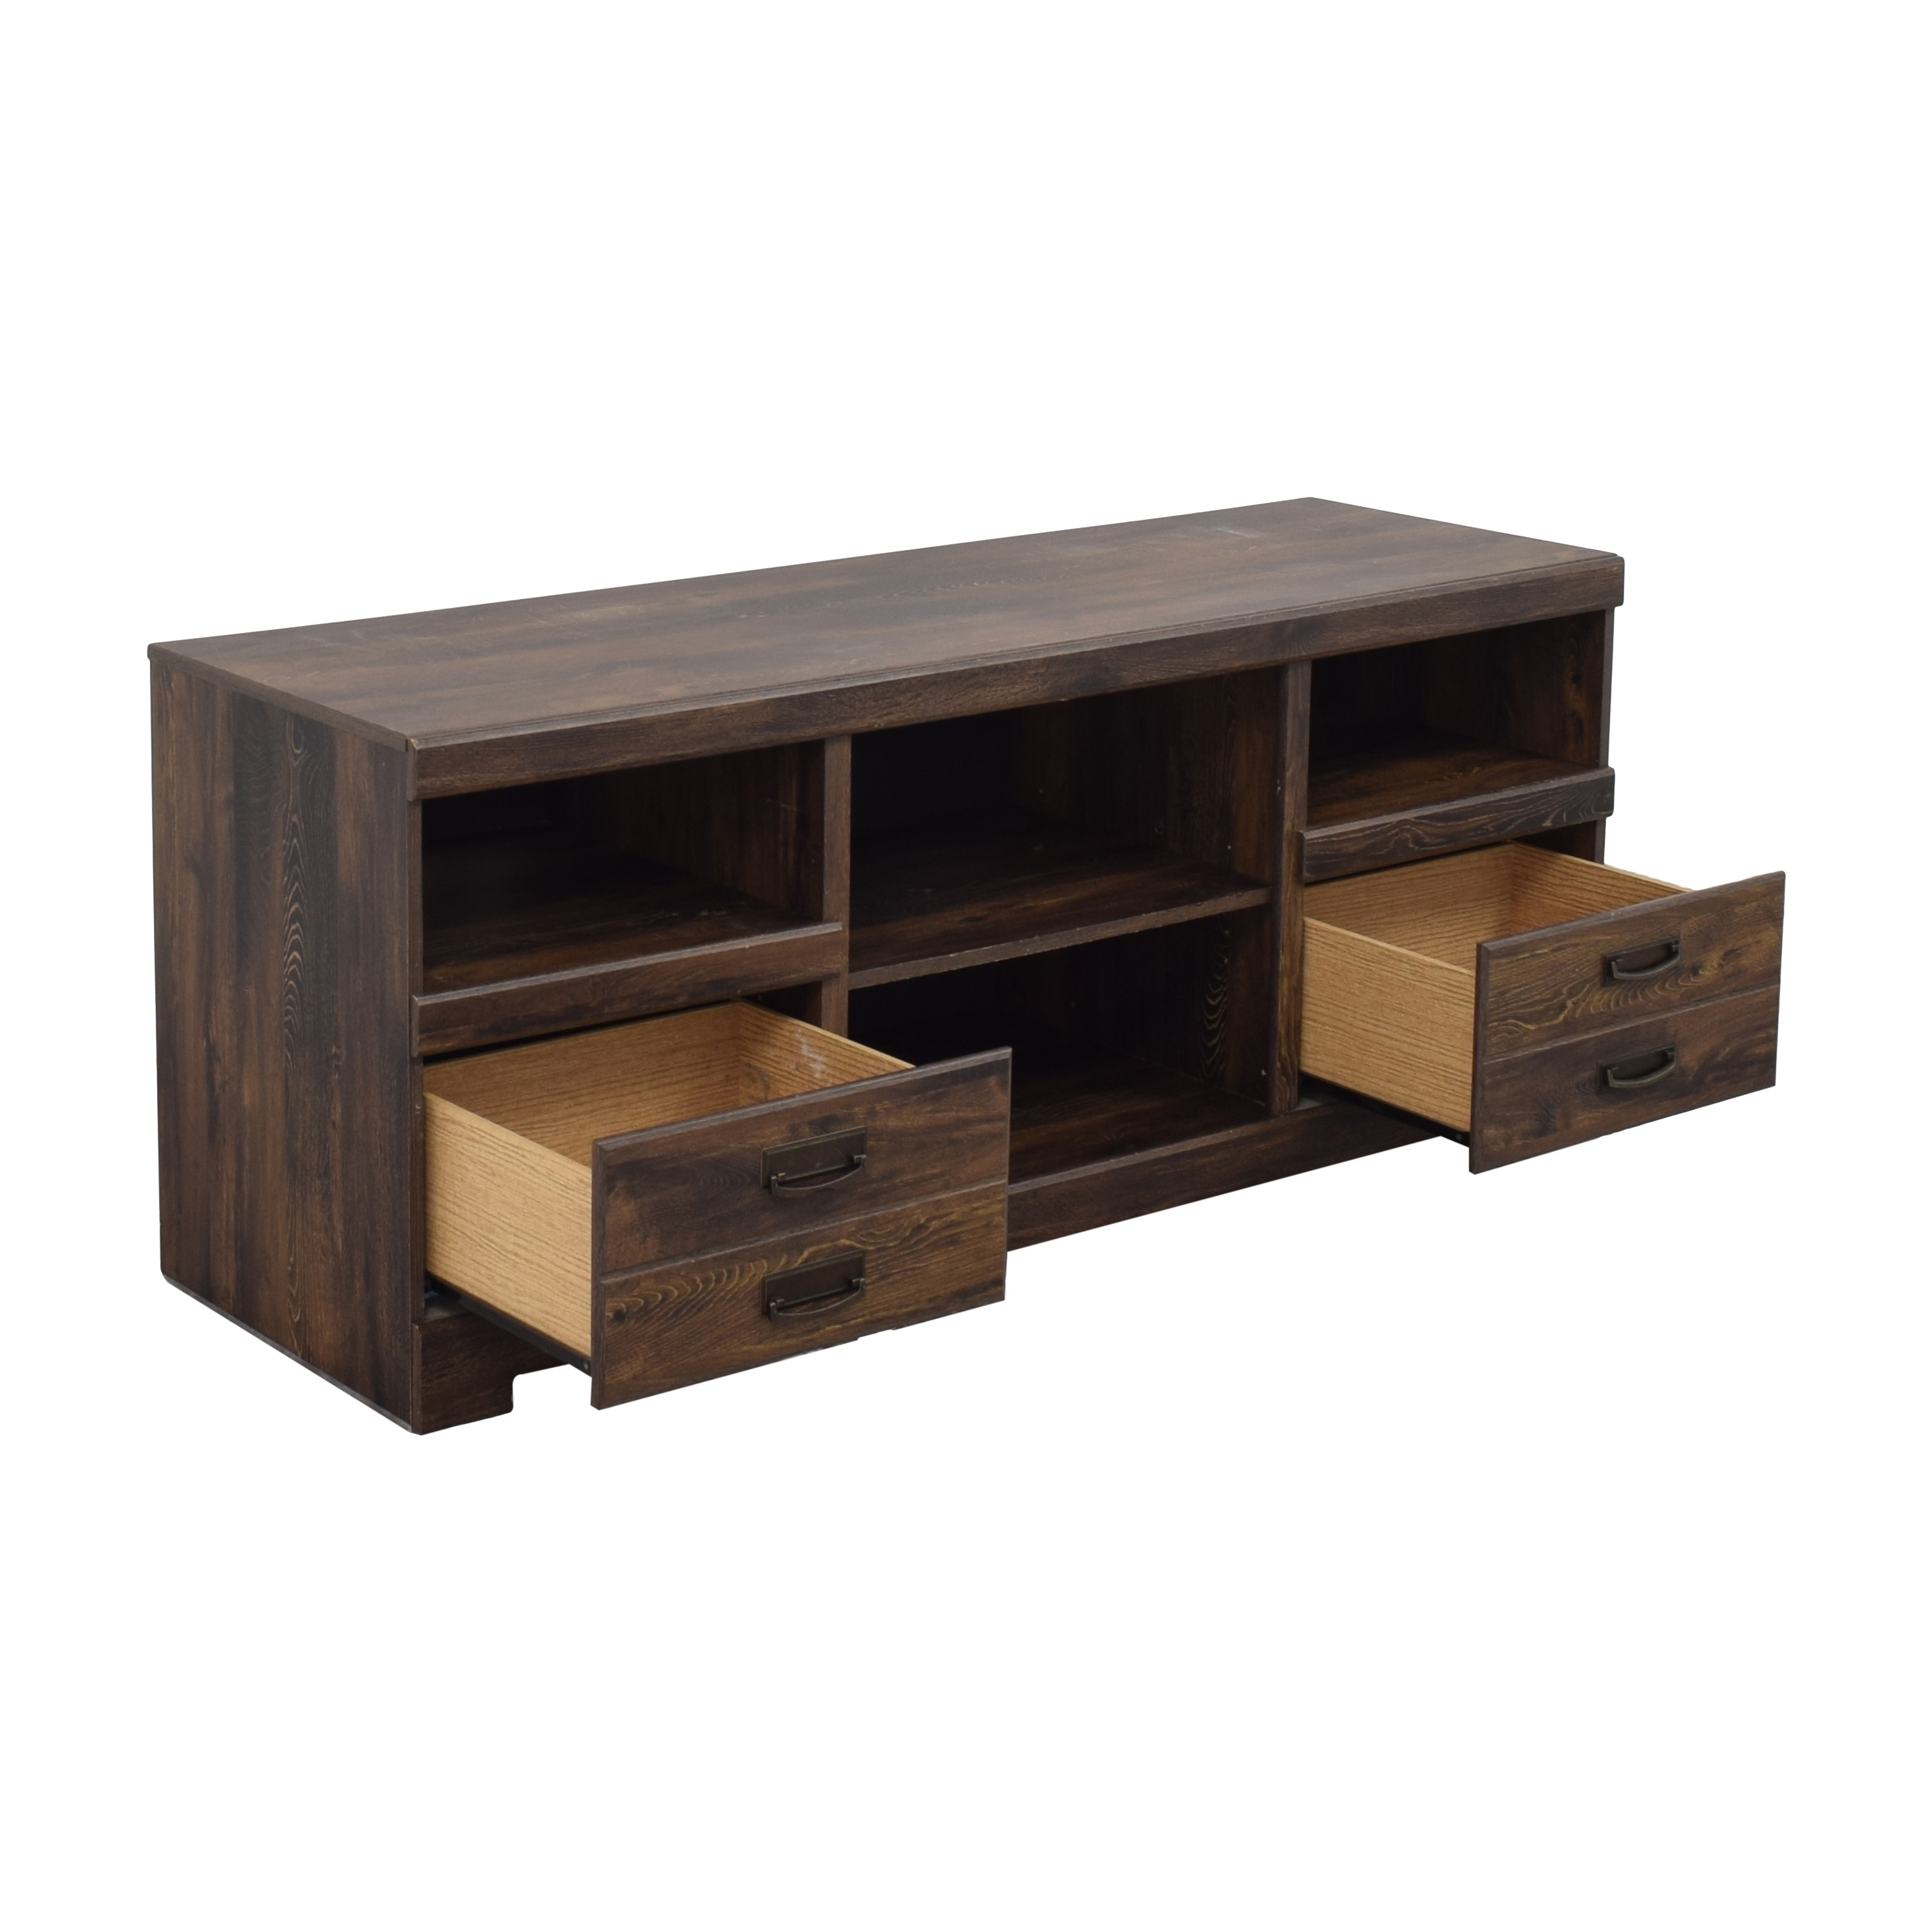 shop Ashley Furniture Ashley Furniture Media Console with Two Drawers online